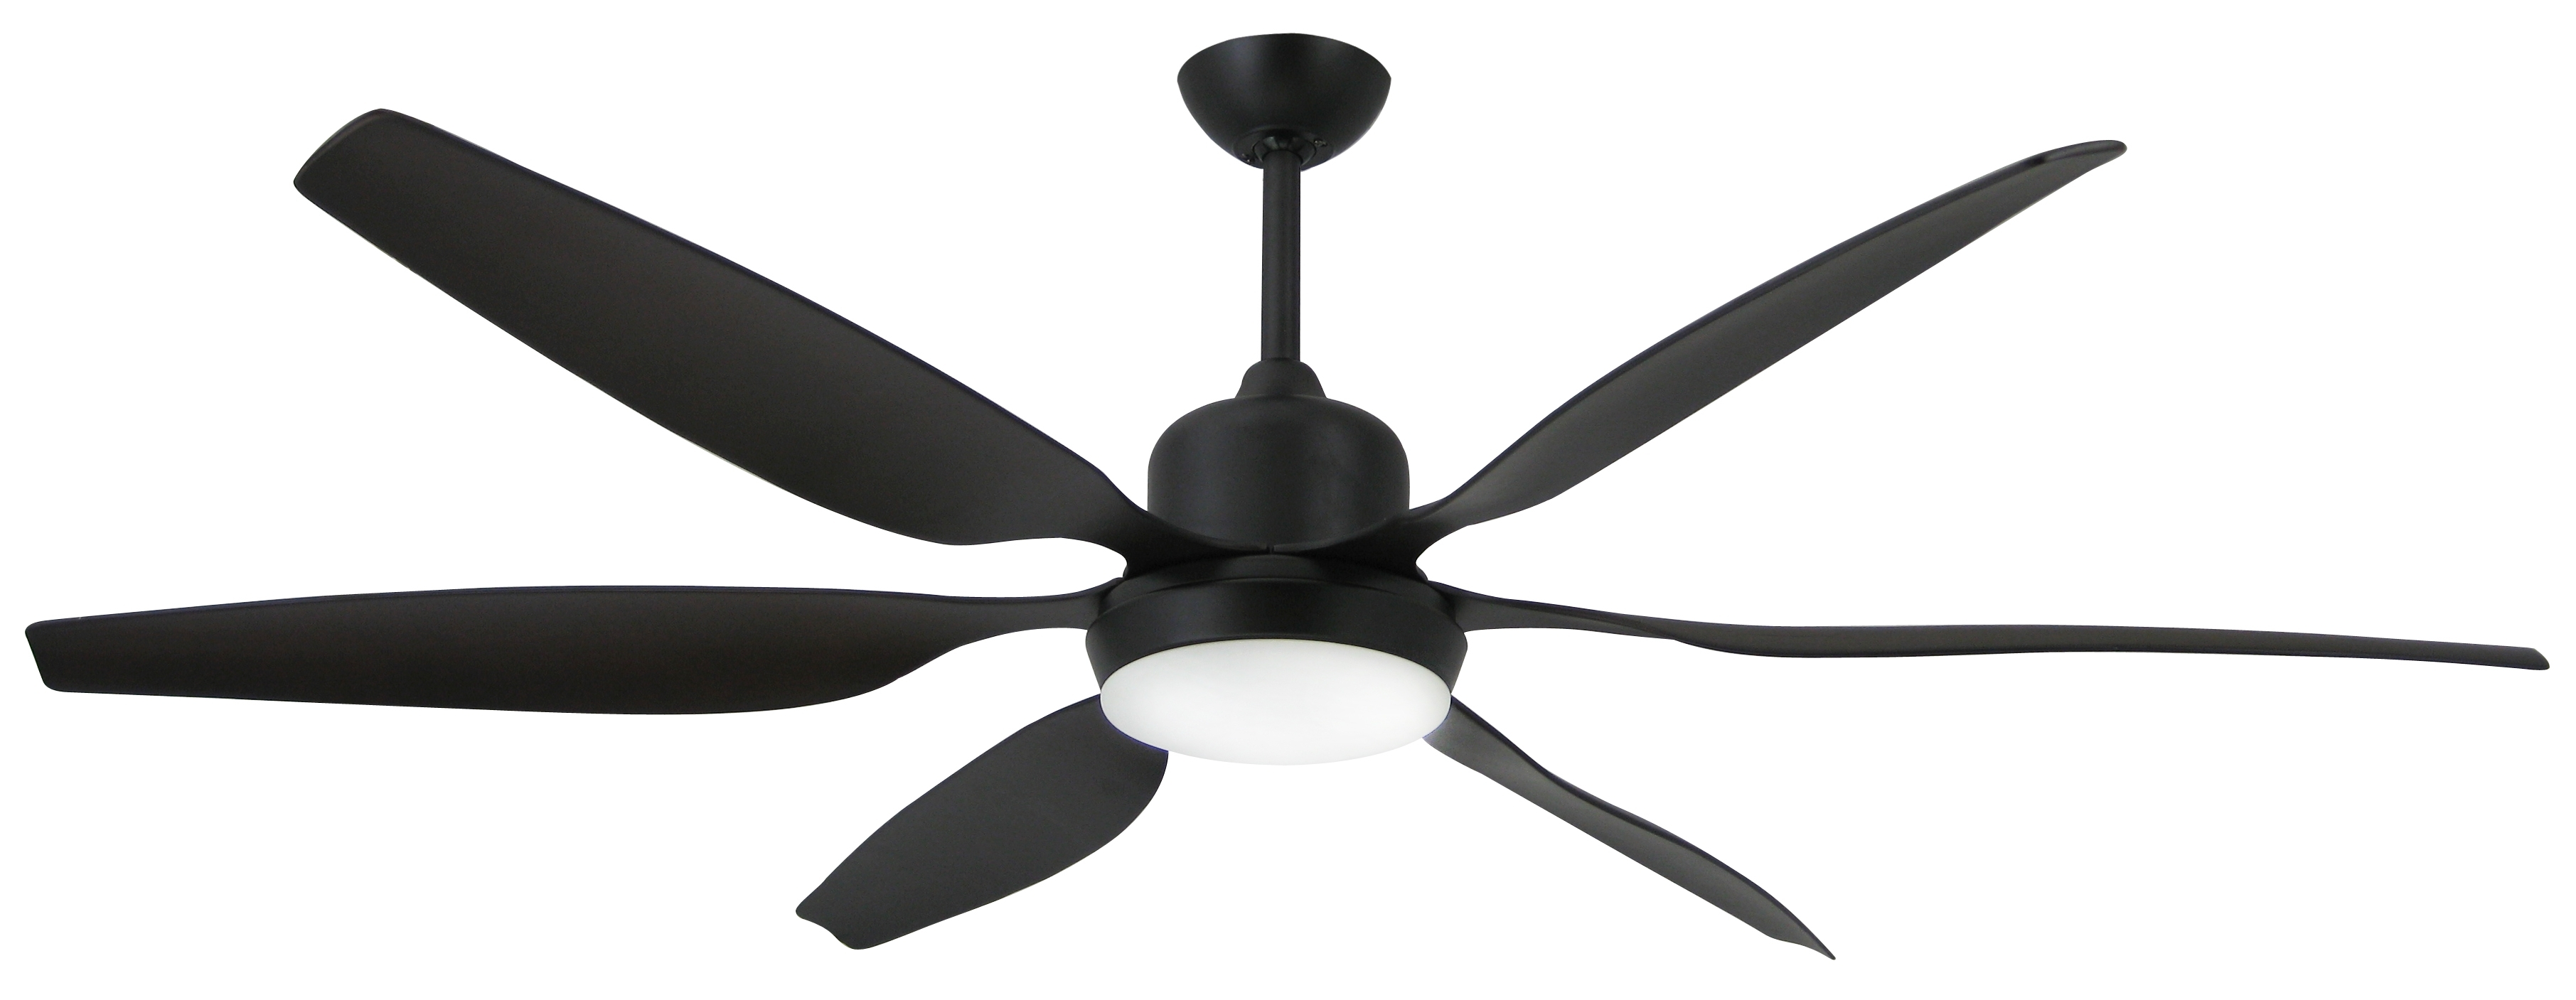 Well Known Industrial Outdoor Ceiling Fans – Pixball Within Industrial Outdoor Ceiling Fans With Light (View 8 of 20)